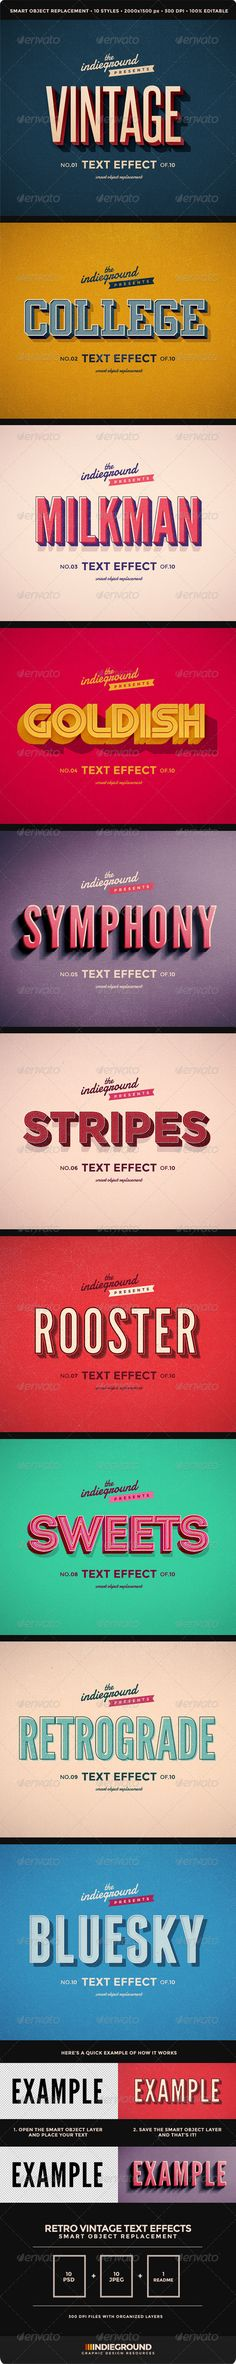 Retro Vintage Text Effects :  Check out this great #graphicriver item 'Retro Vintage Text Effects' http://graphicriver.net/item/retro-vintage-text-effects/8095568?ref=25EGY